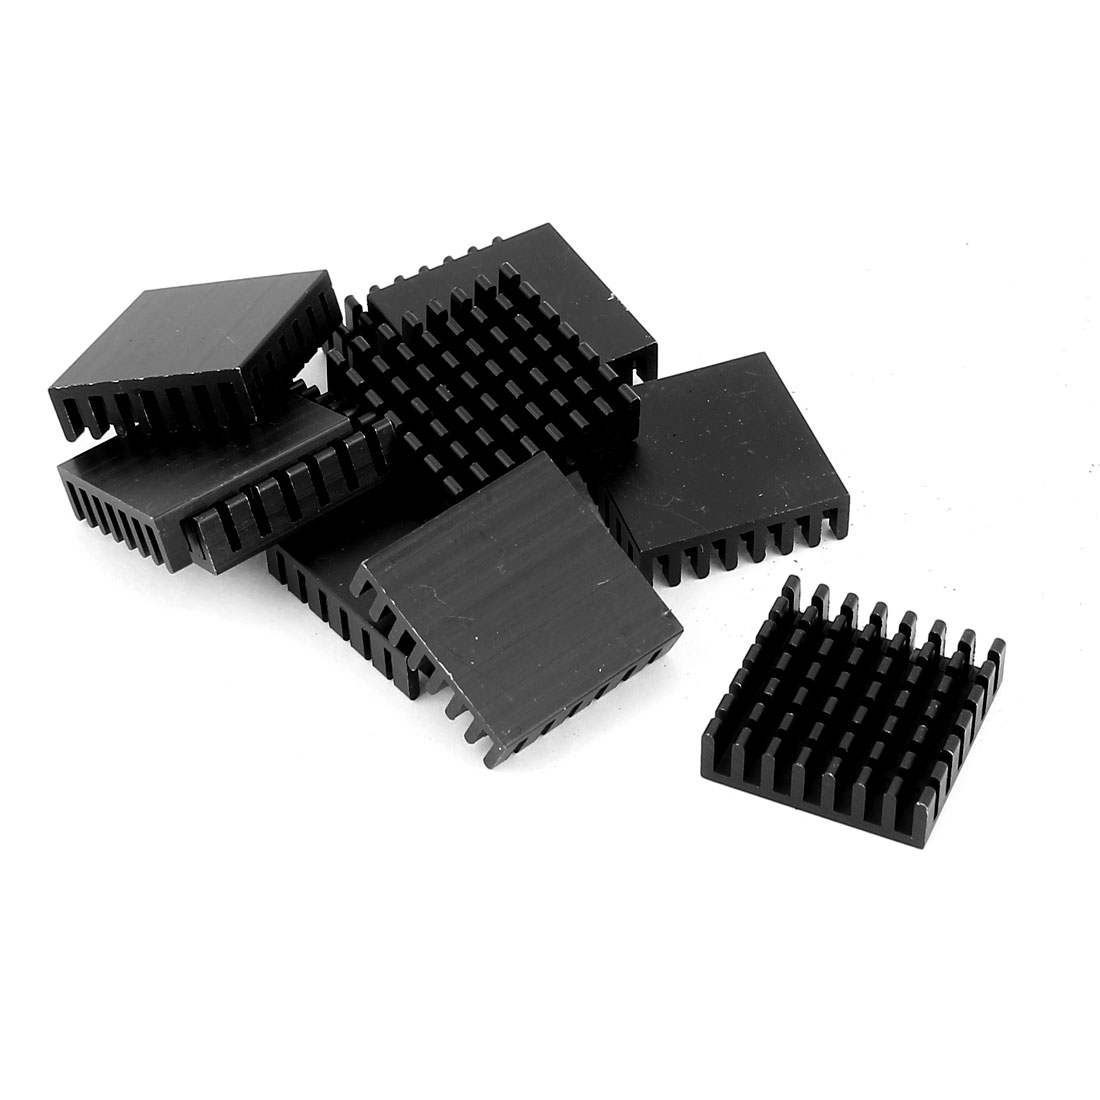 10Pcs 28x28x8mm Plastic Mini CPU Thermal Heat Sink Cooling Fin Black